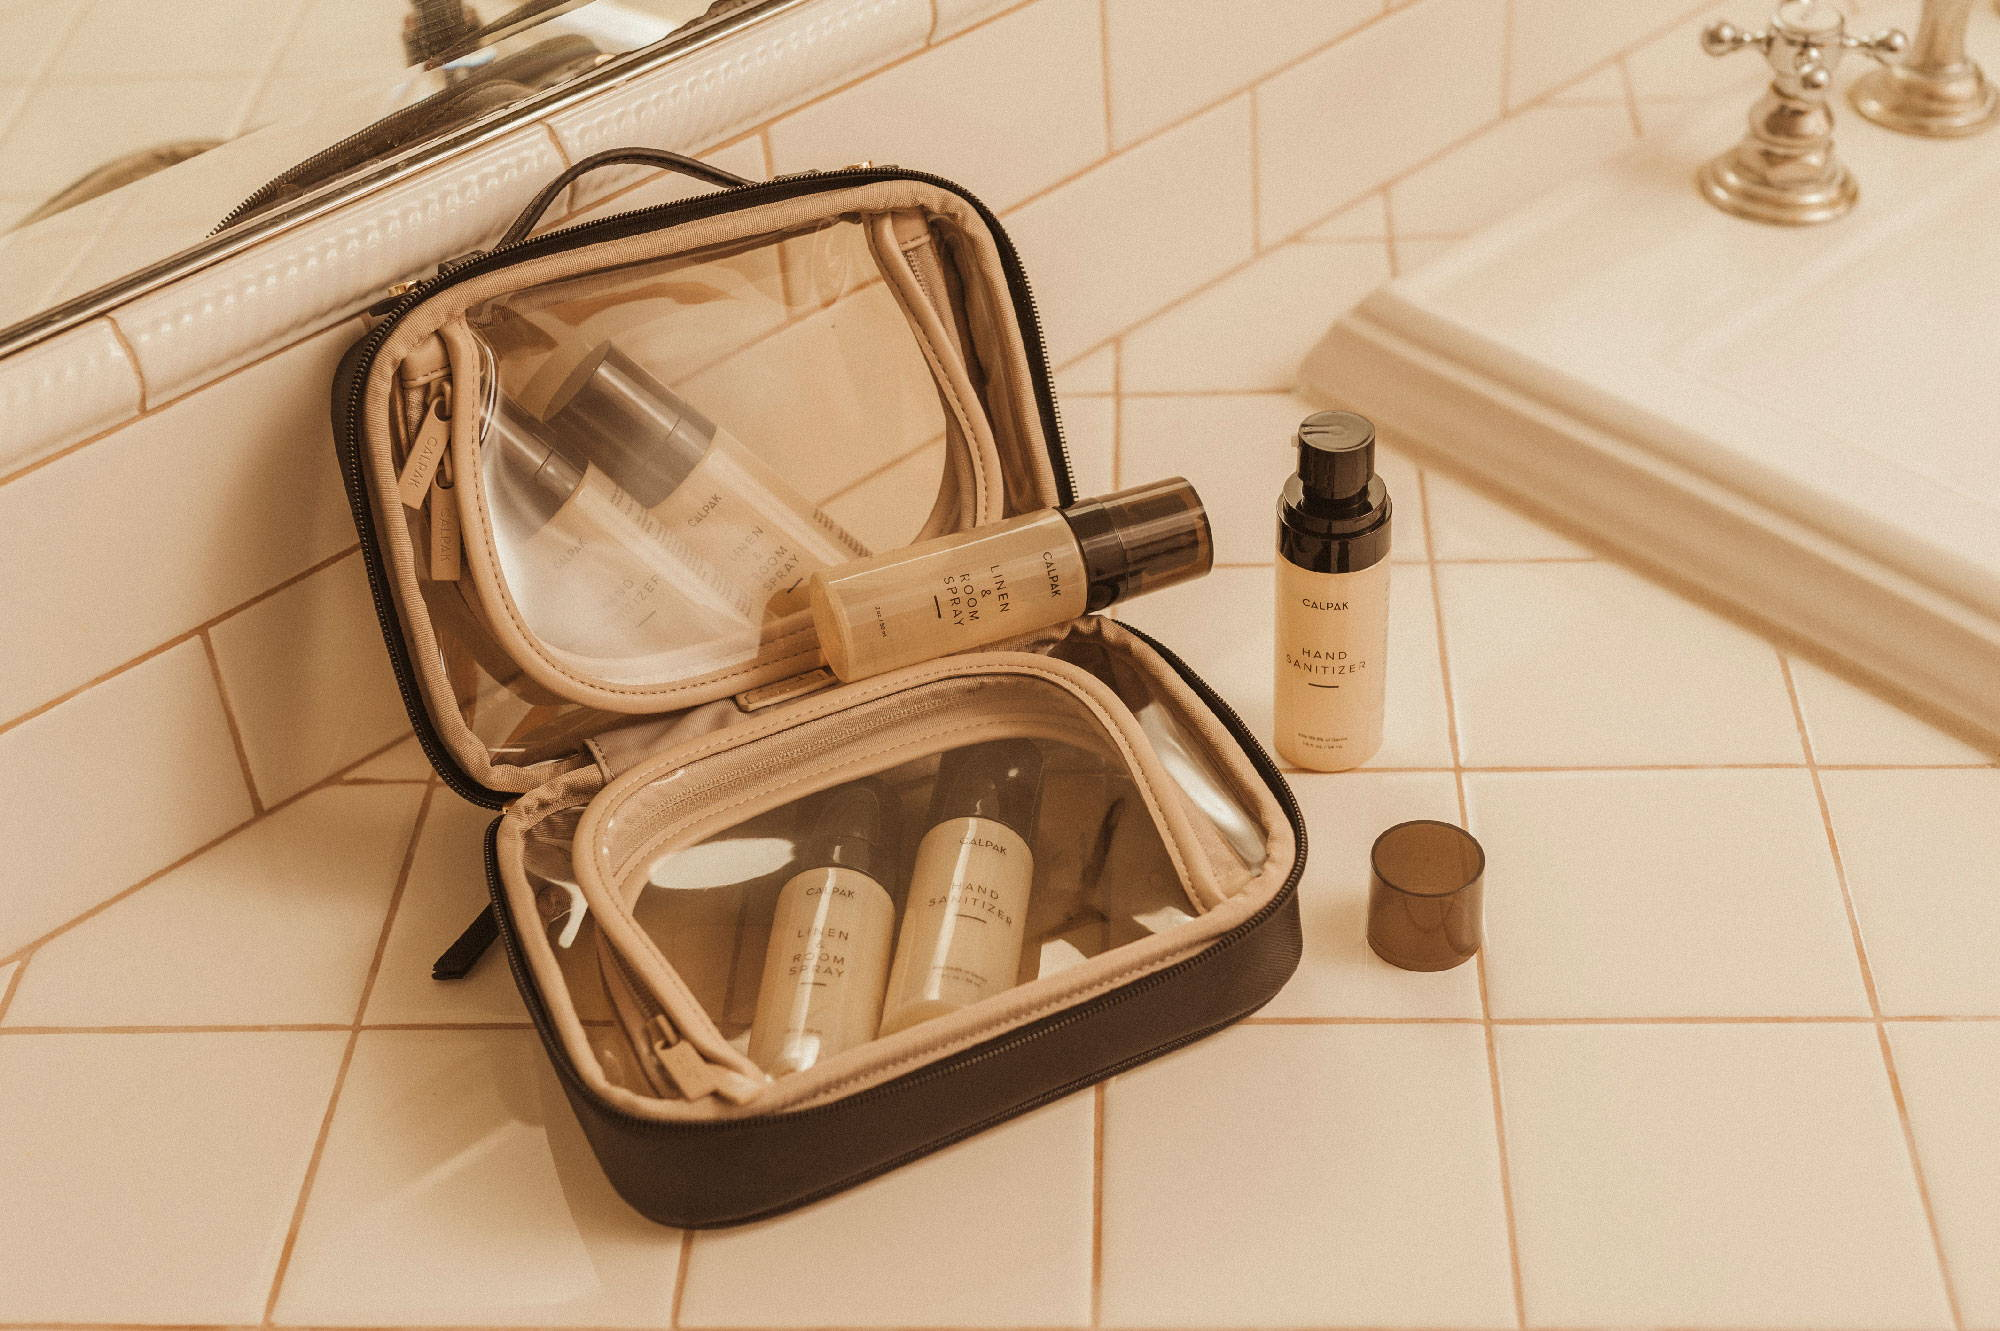 CALPAK Mini Clear Cosmetics Case in Eclipse, Everyday Hand Sanitizer, and Freshen Up Linen & Room Spray.